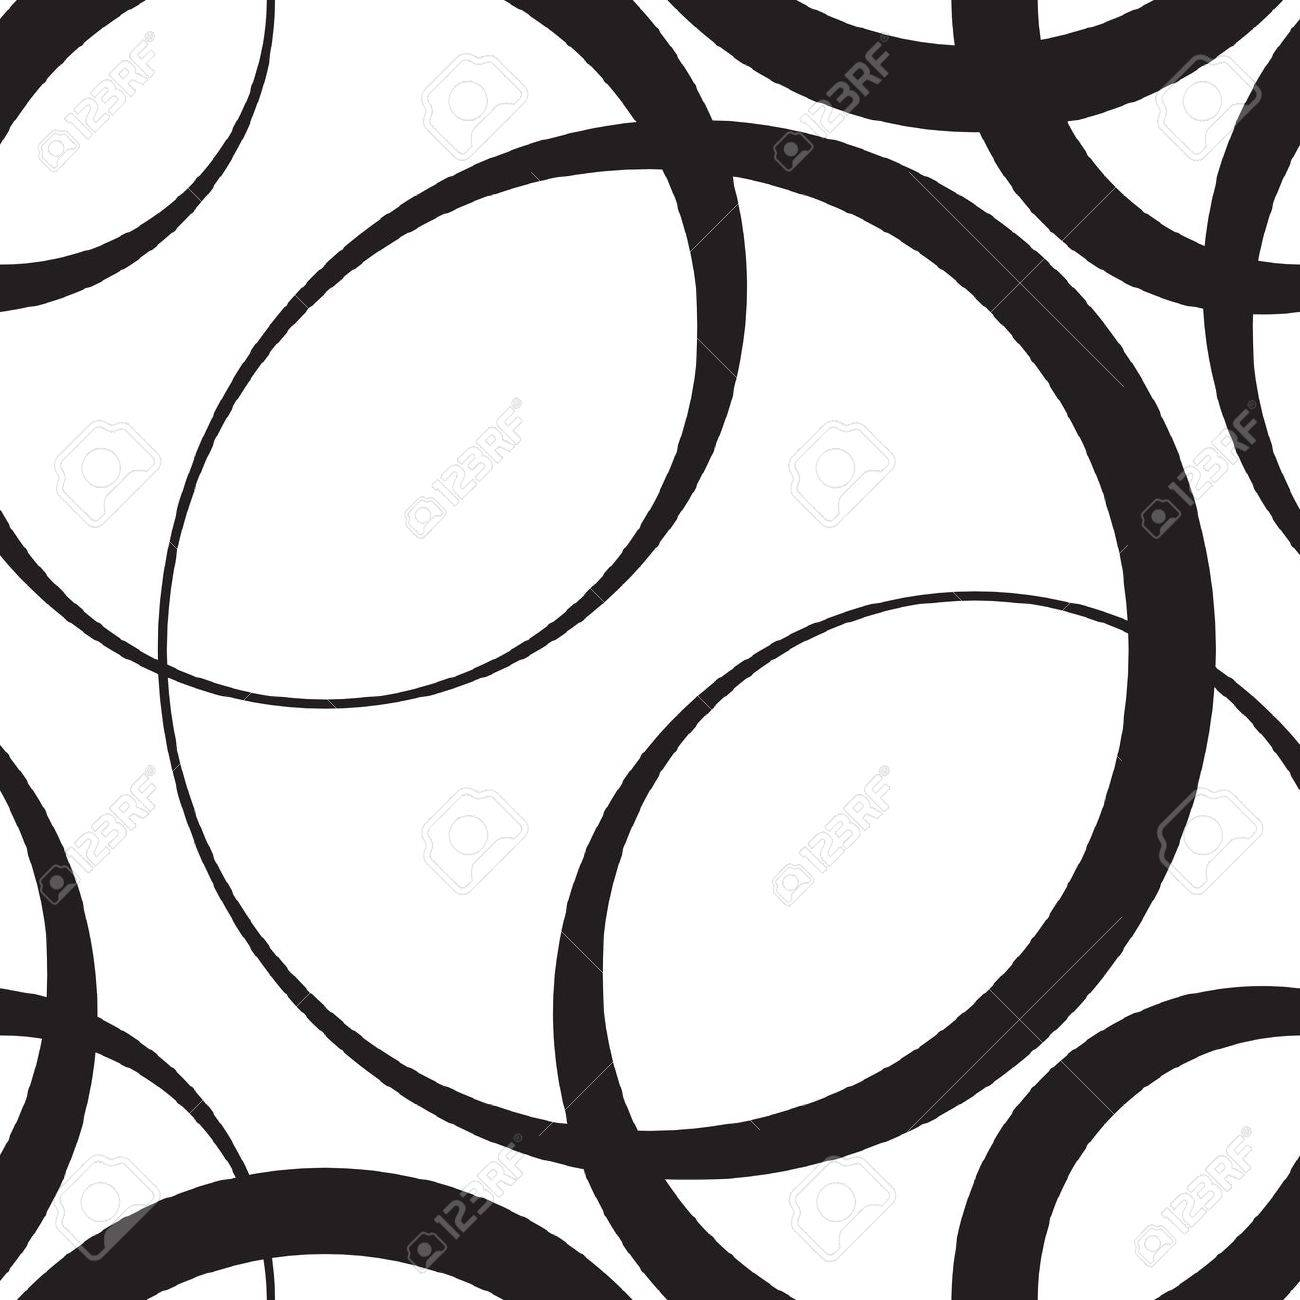 Vector Abstract Seamless Monochrome Background Stock Vector - 21929406